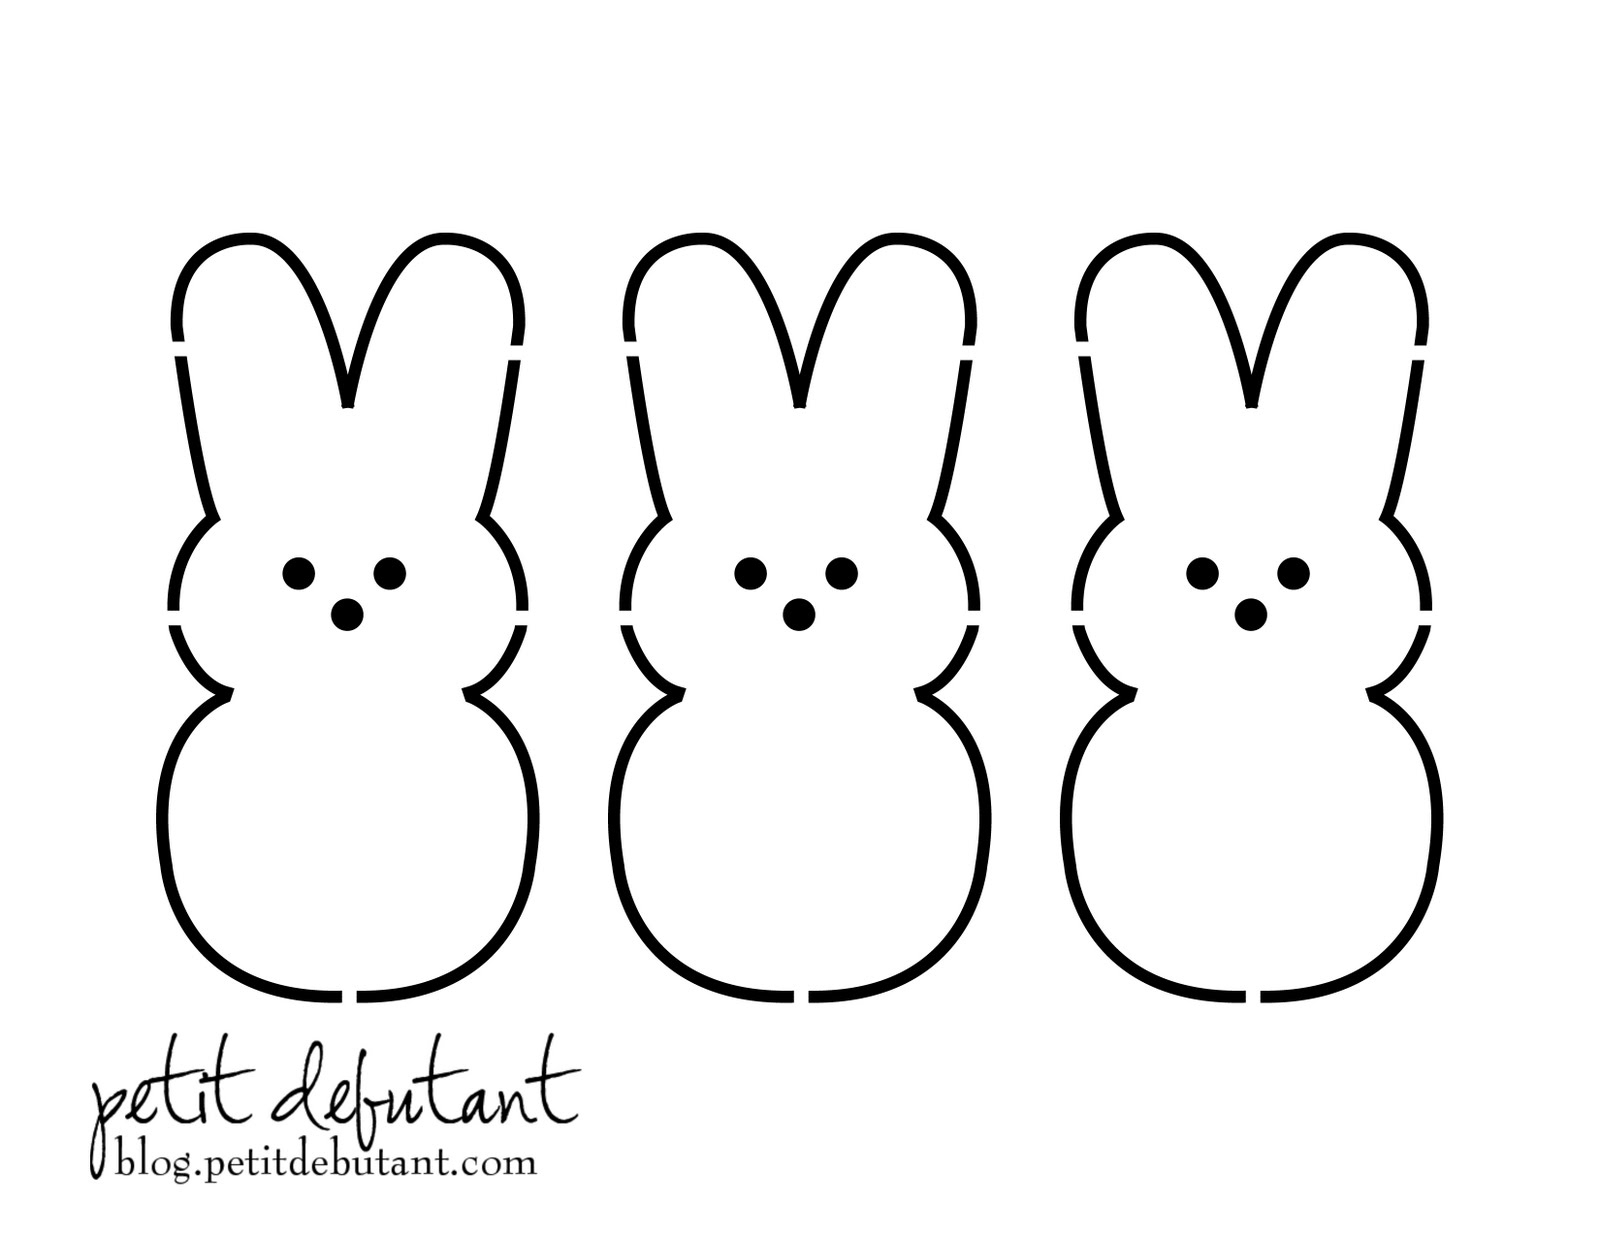 Free Easter Bunny Templates Printables – Hd Easter Images - Free Printable Bunny Templates